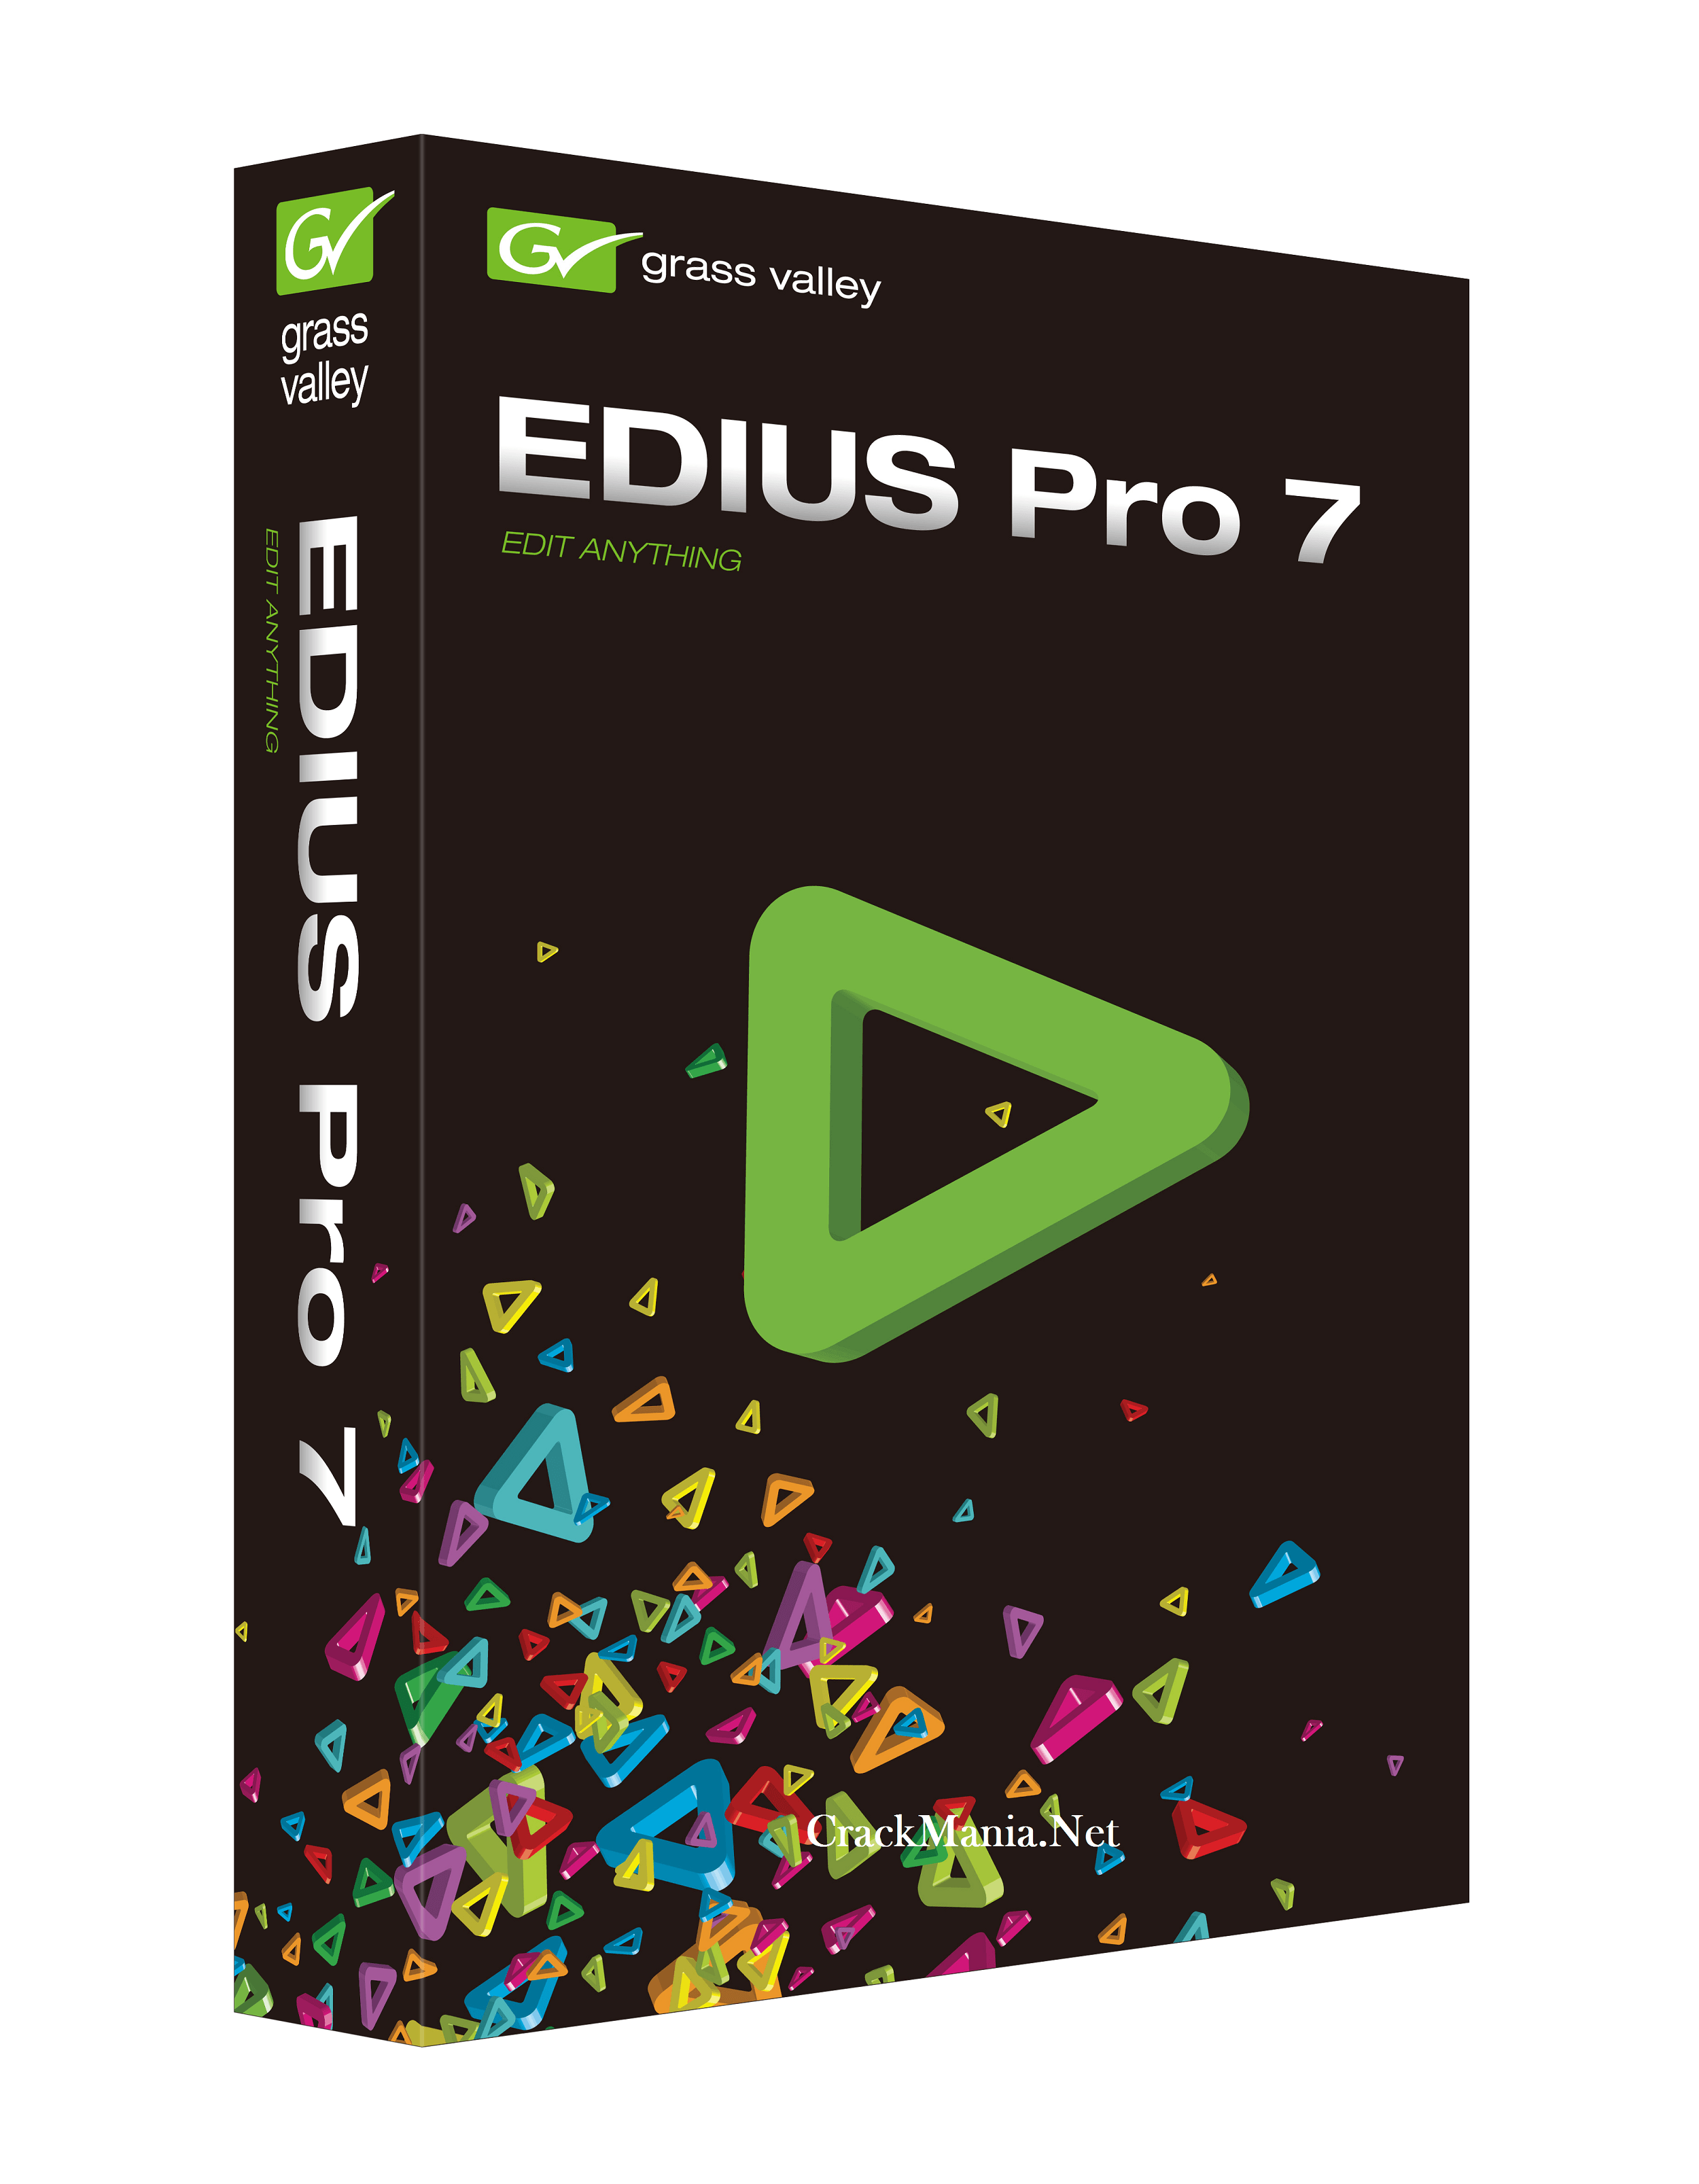 sketchup pro 2015 serial key free download it is full offline edius pro 7 crack with serial number full version full download